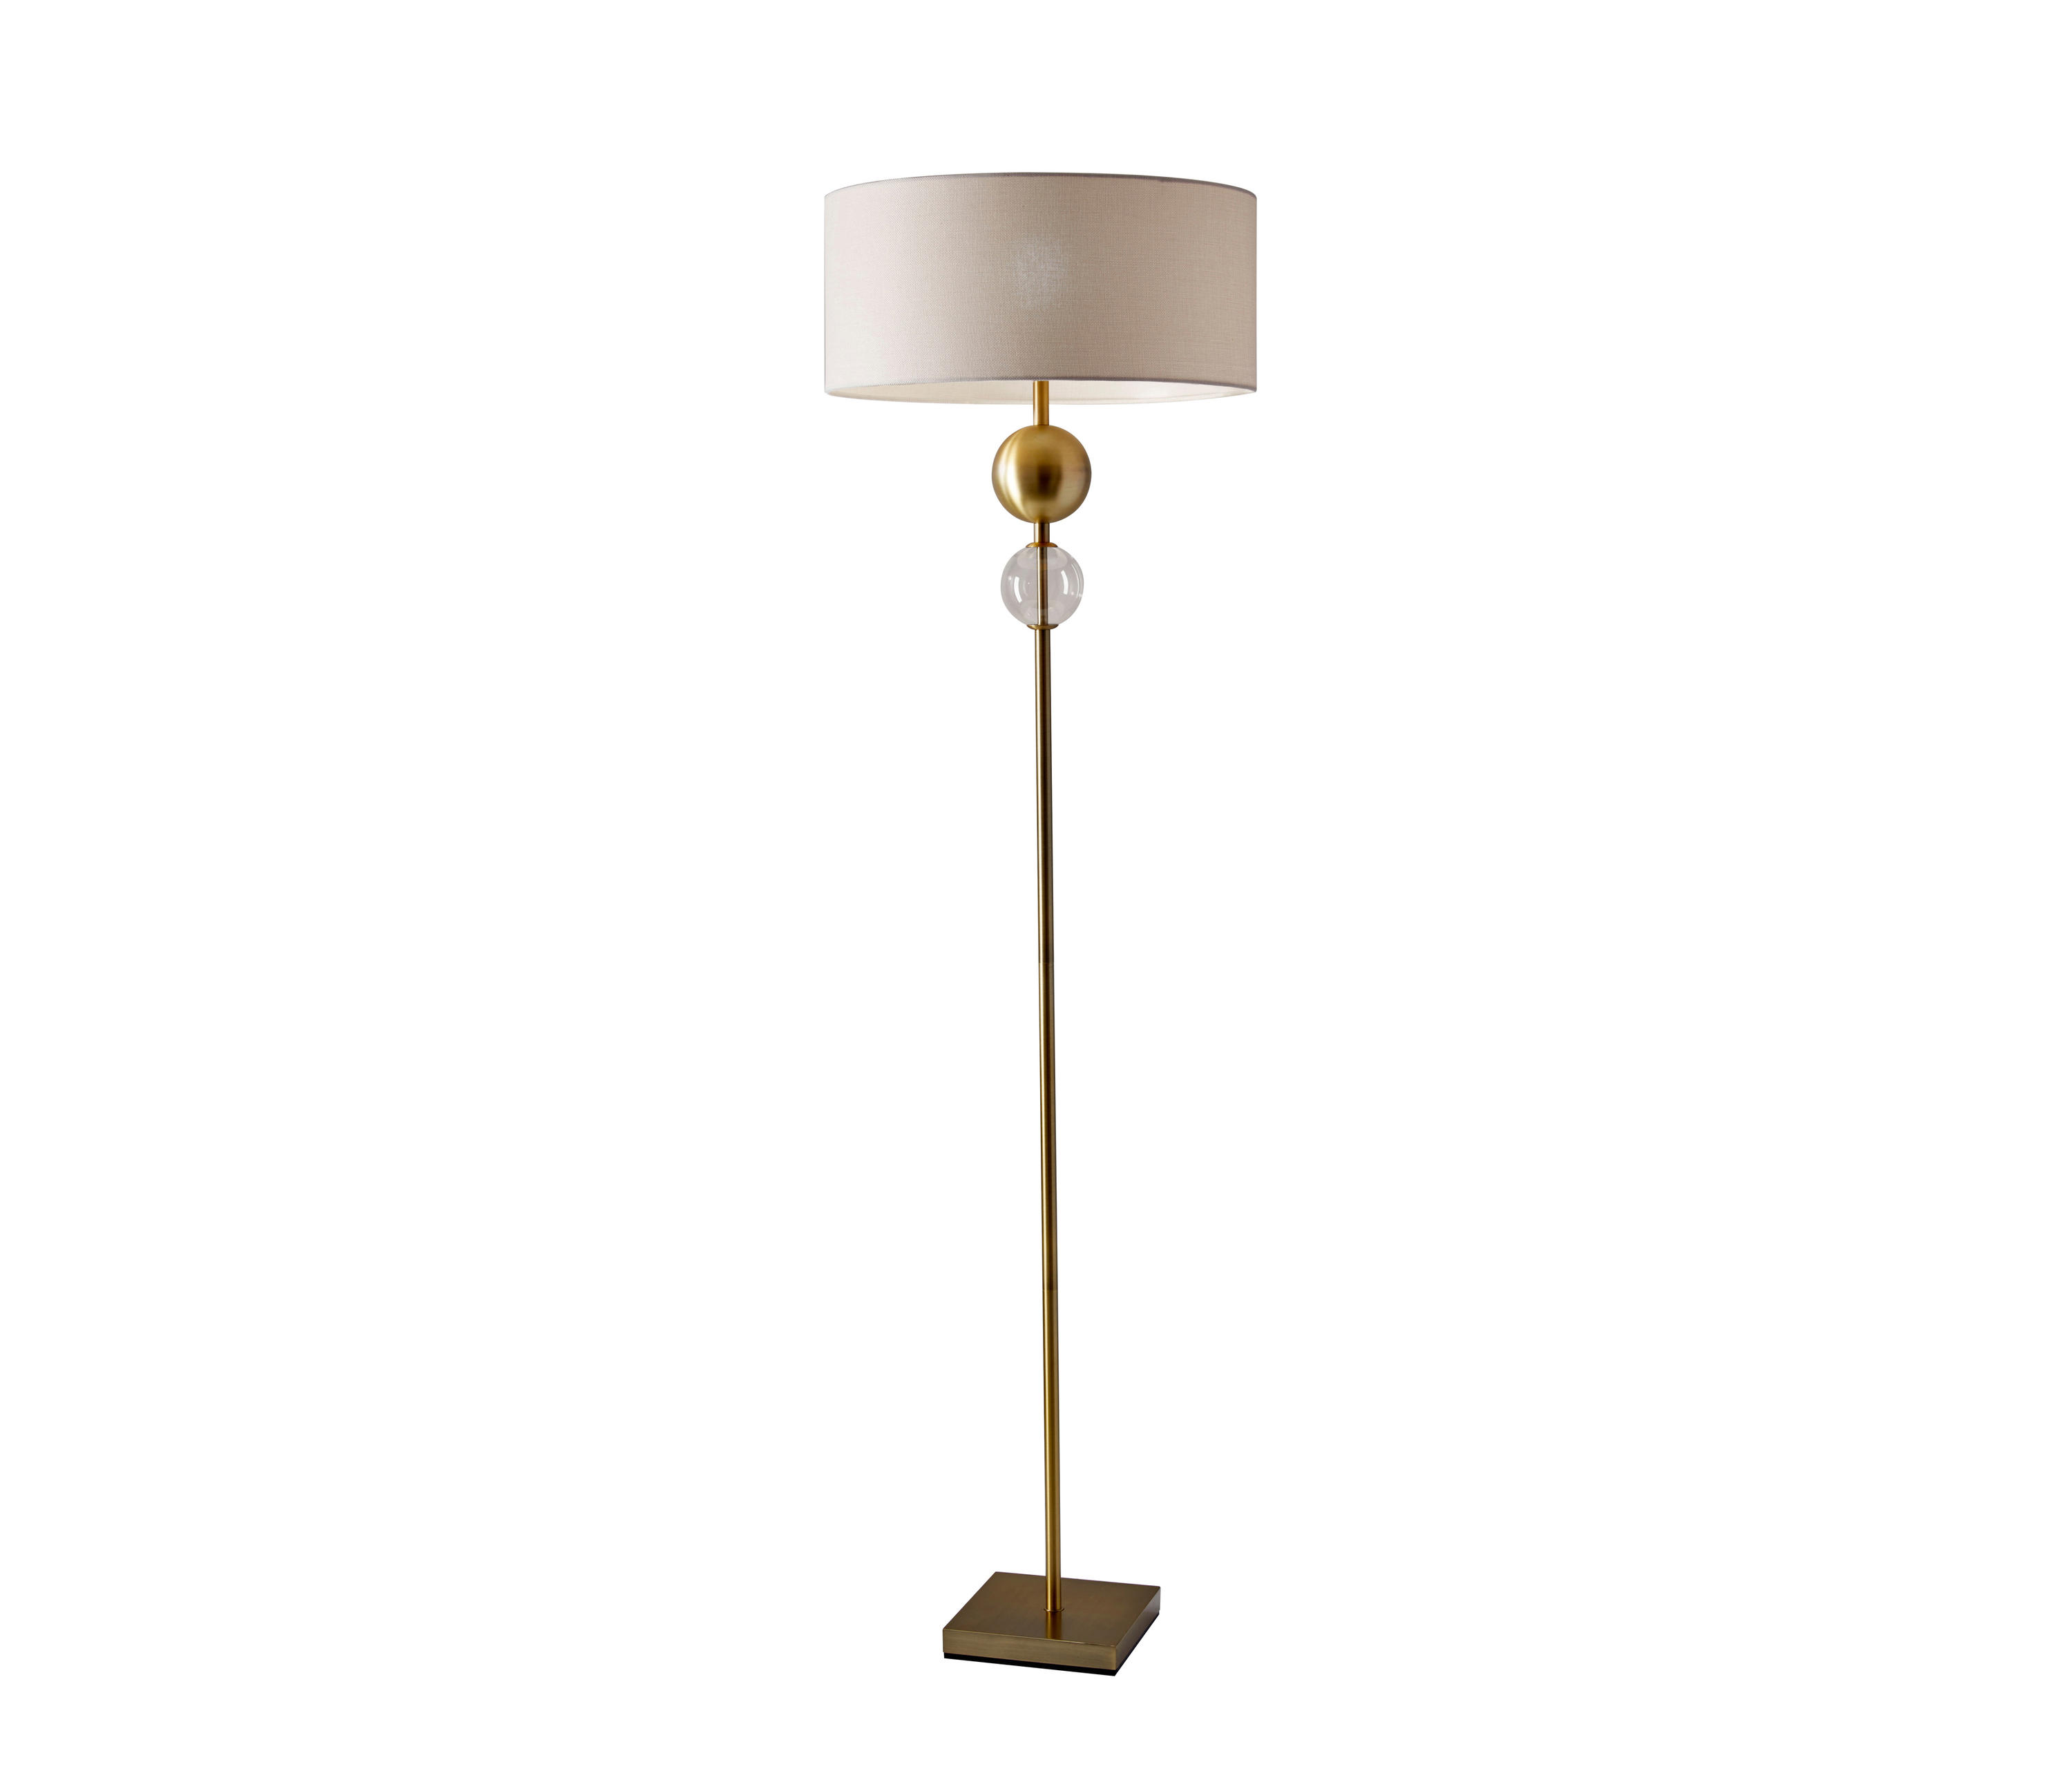 Chloe Floor Lamp Free Standing Lights From Ads360